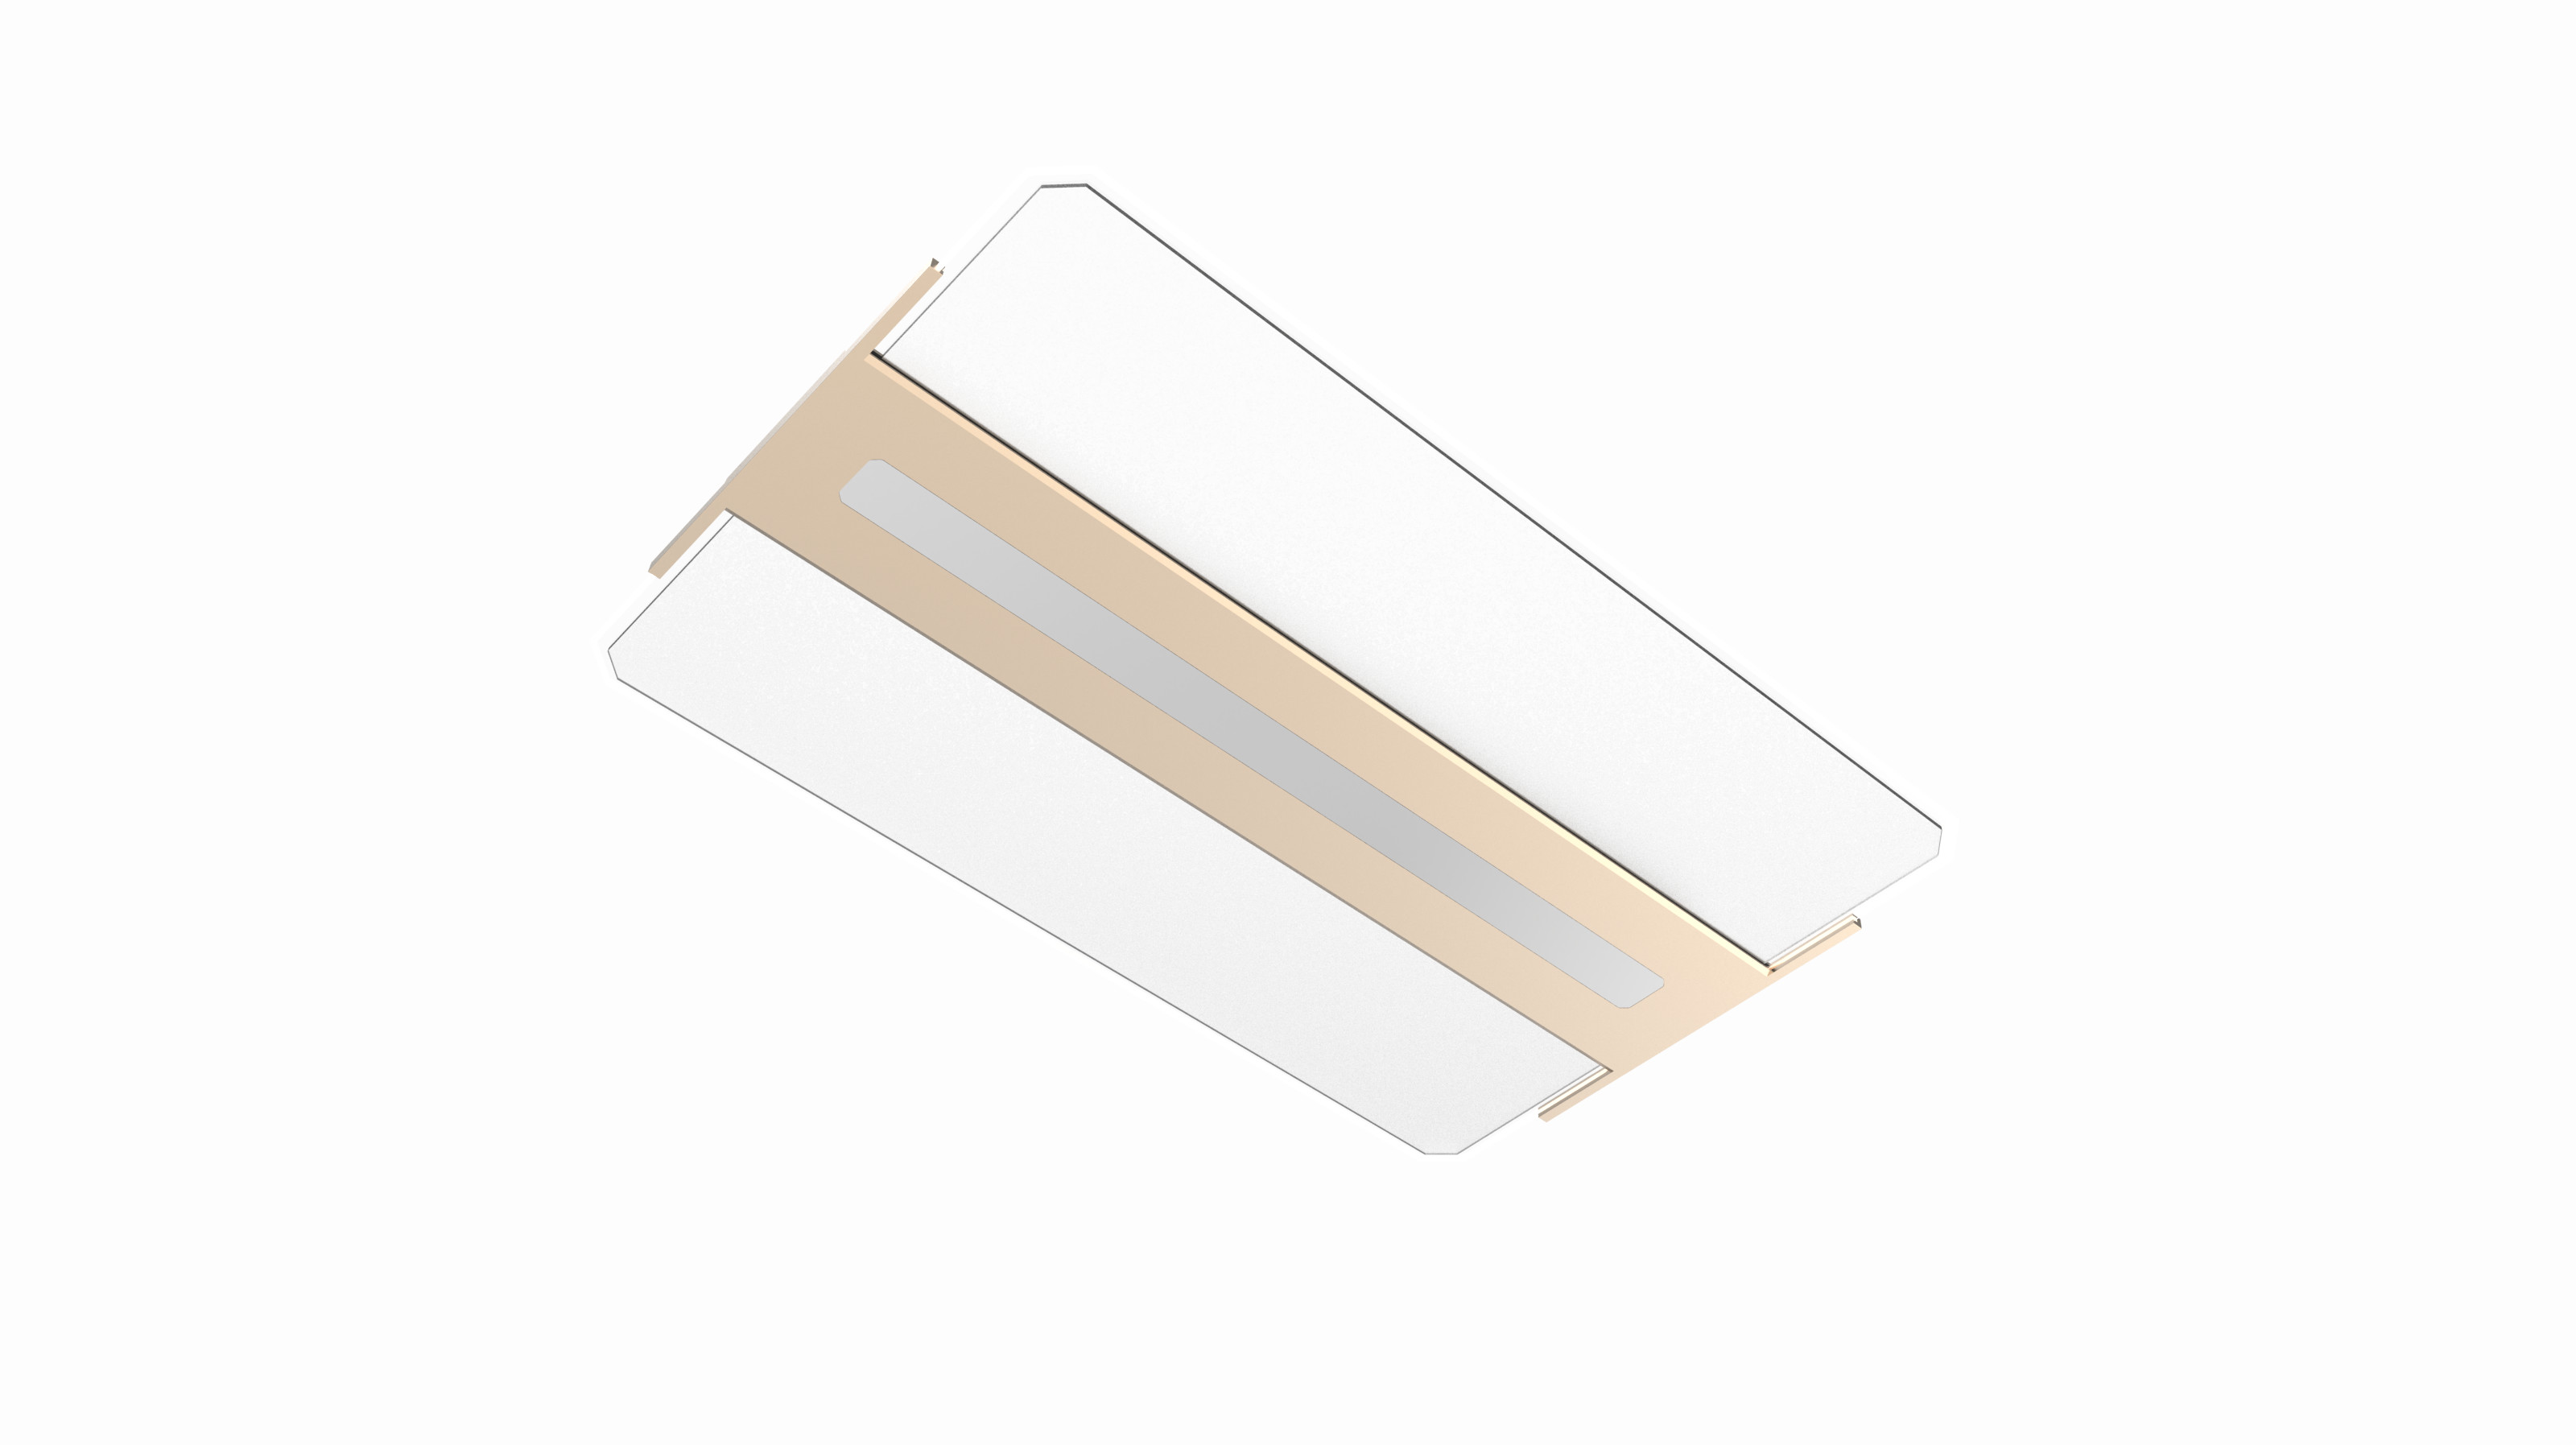 65W 6000LM Square Led Ceiling Lights With Remote Control SAMSUNG LED Ra97